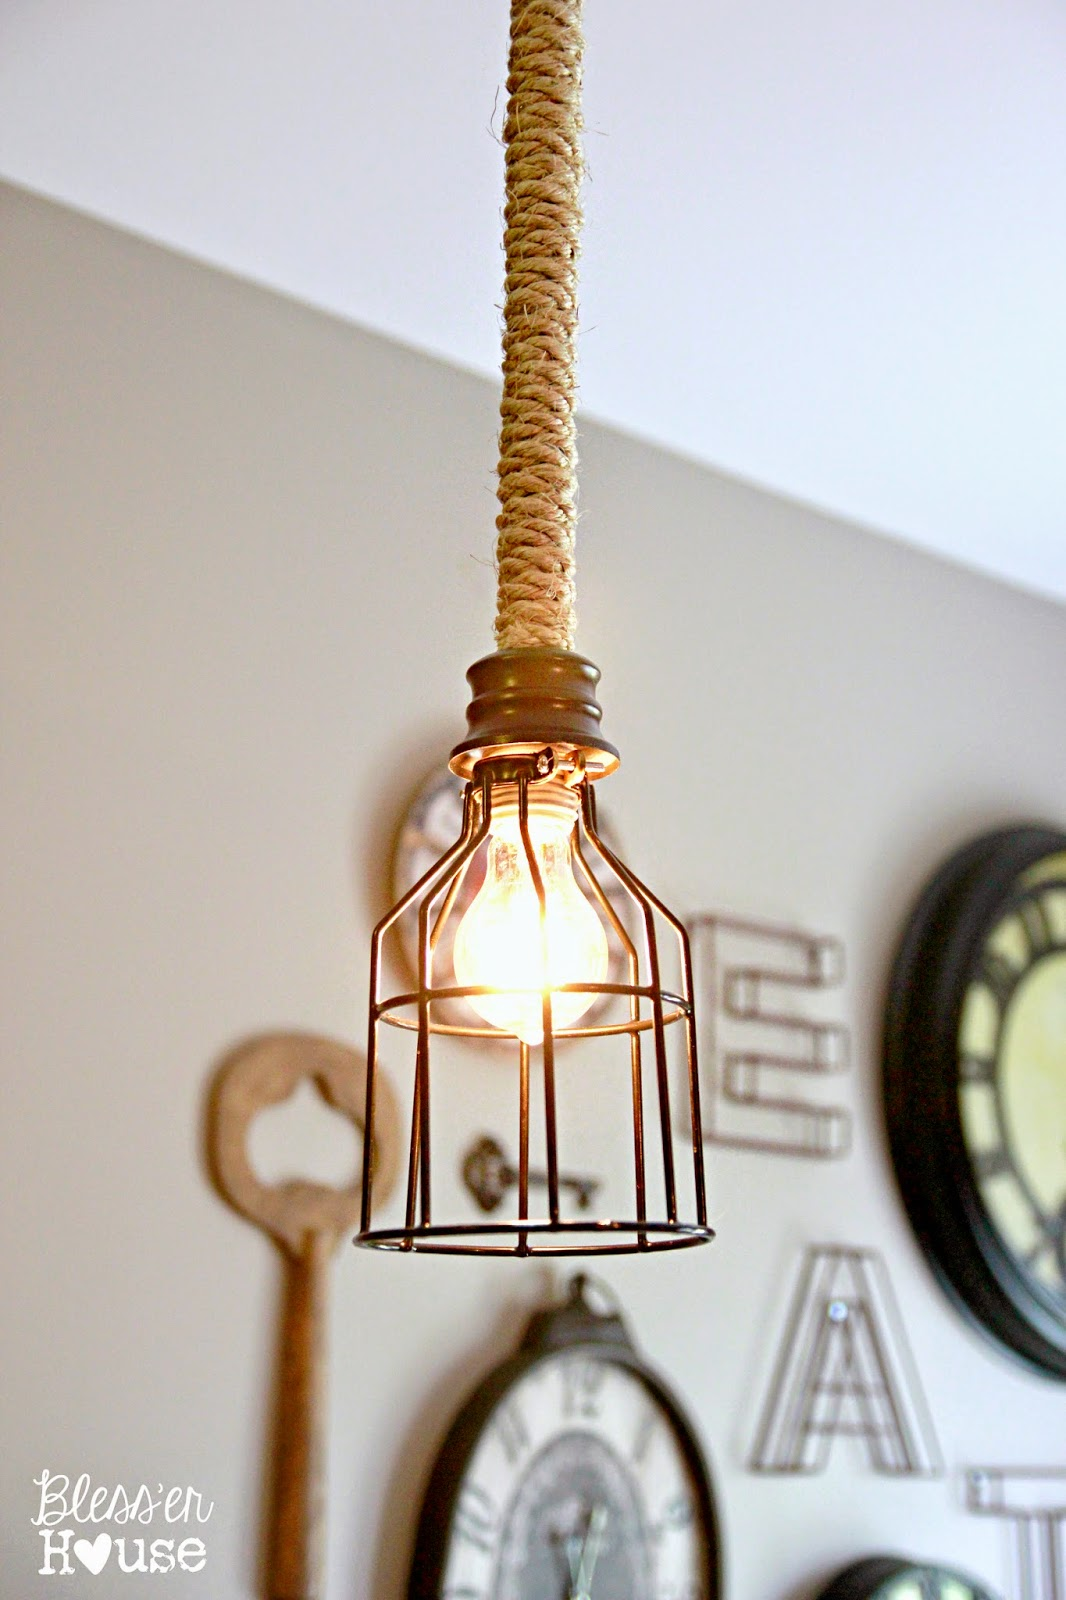 Diy industrial pendant light for under 10 bless 39 er house for Diy pendant light